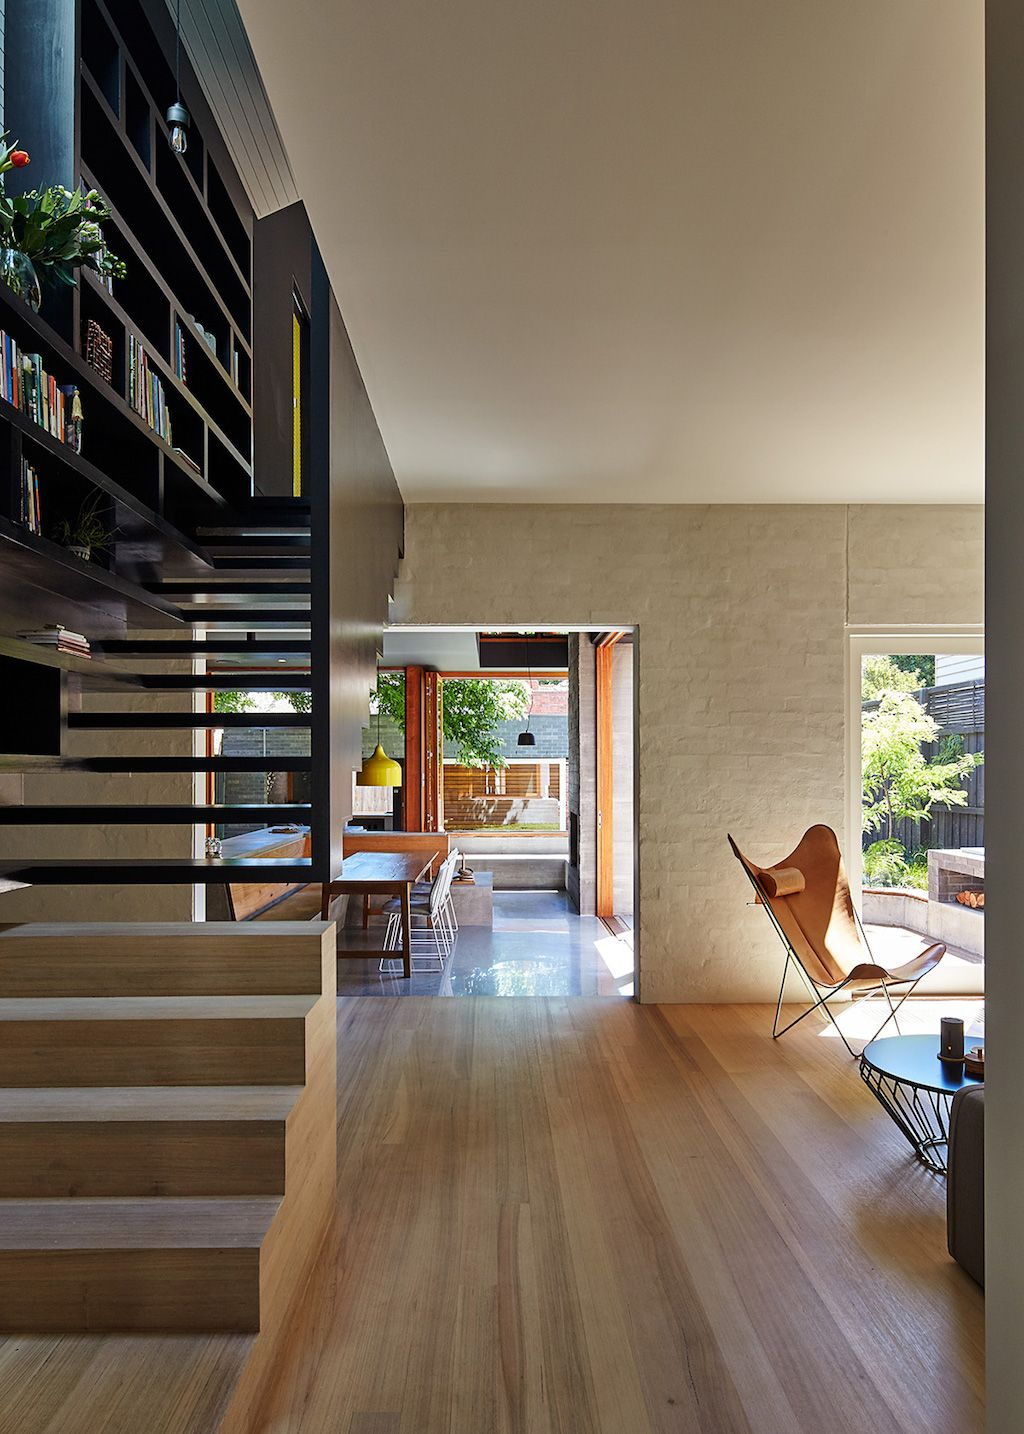 Local house by melbourne architect melissa bright